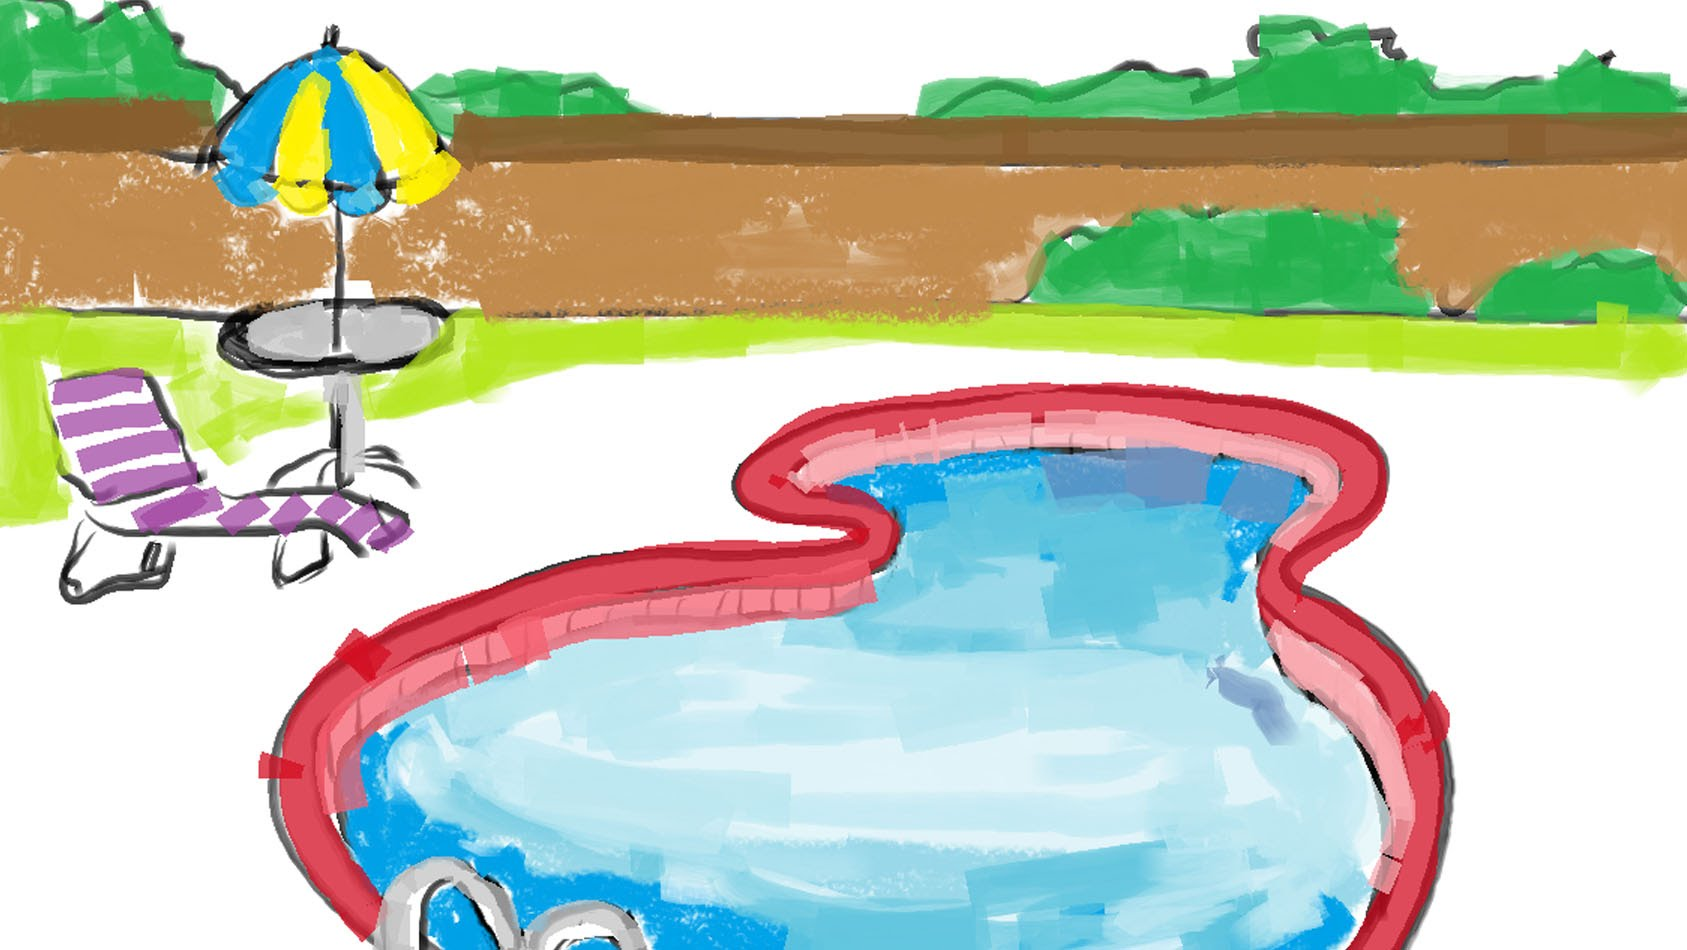 1687x950 How To Draw A Cartoon Outdoor Swimming Pool Within Fence Free